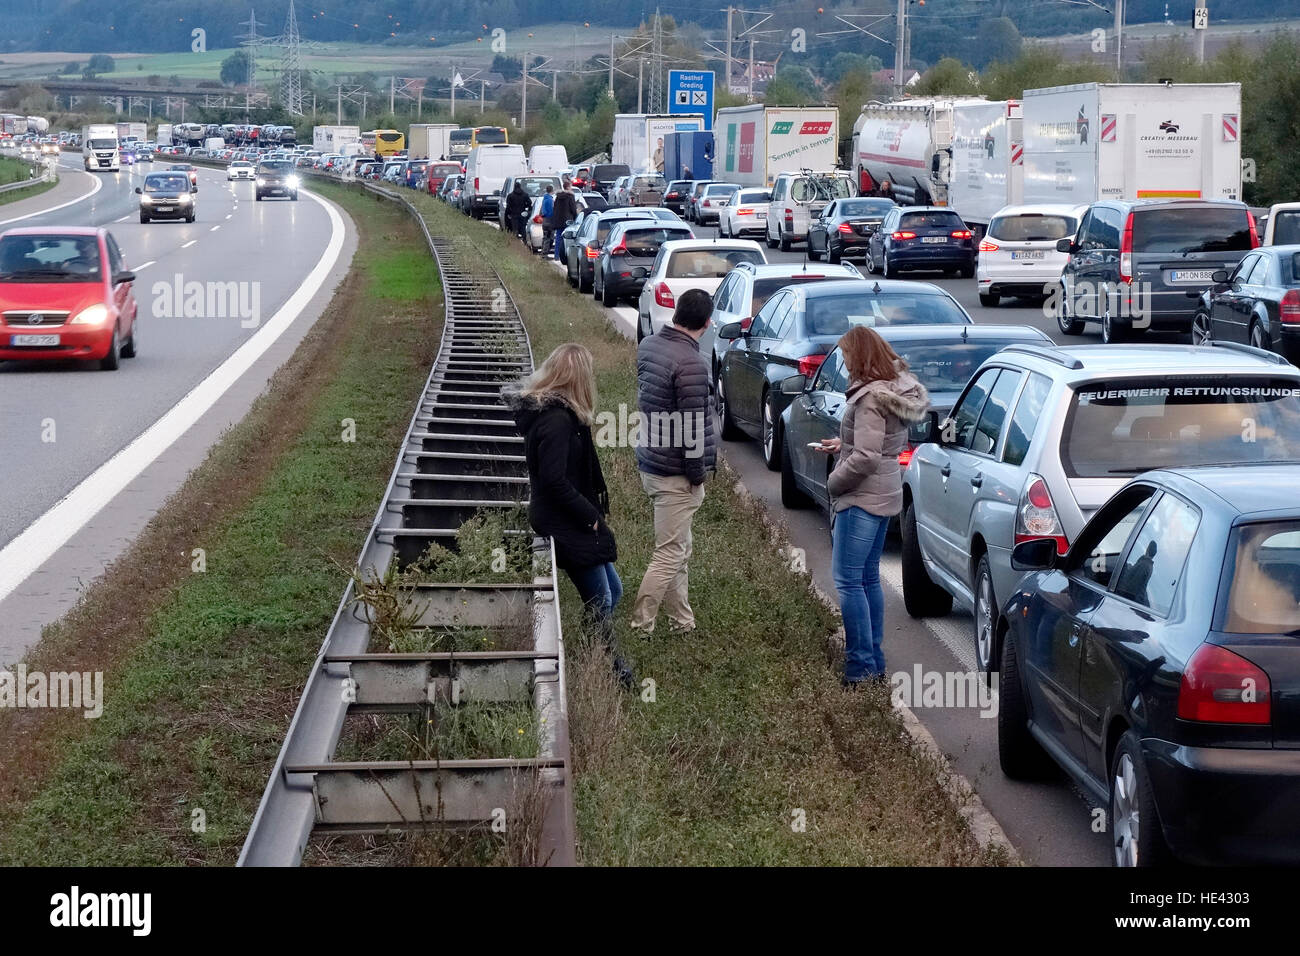 Traffic congestion on motorway, Greding, Germany. - Stock Image